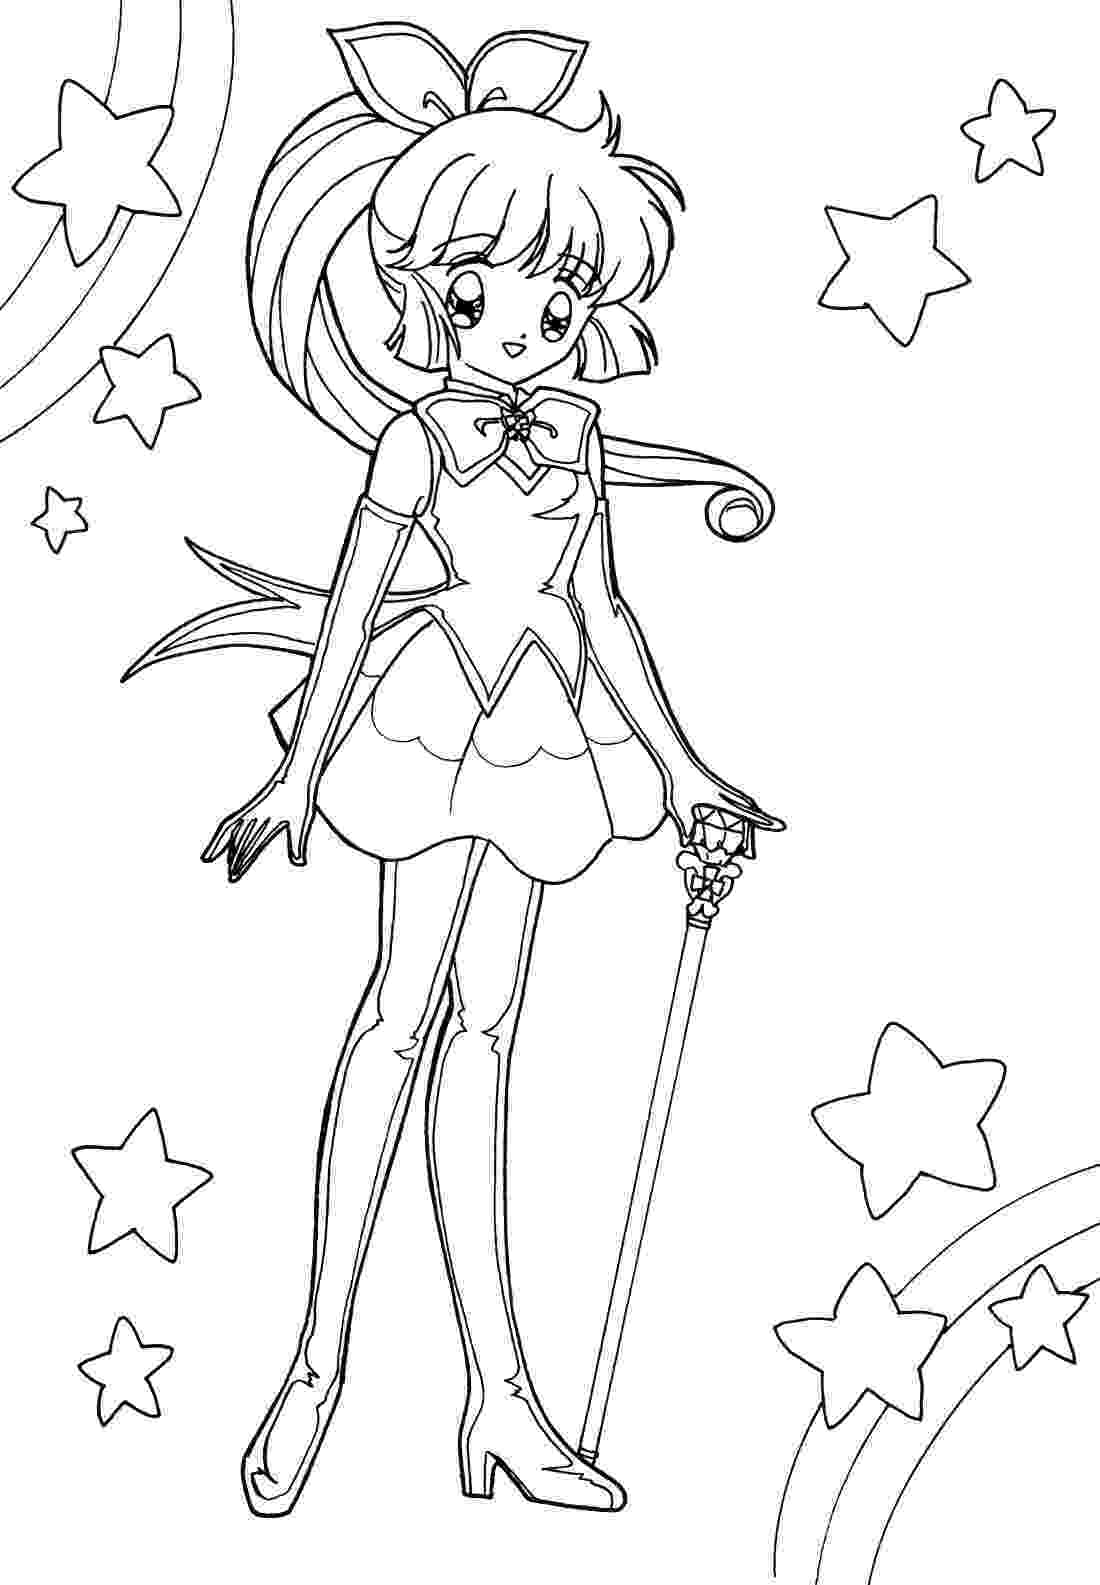 anime colors anime coloring pages best coloring pages for kids colors anime 1 3